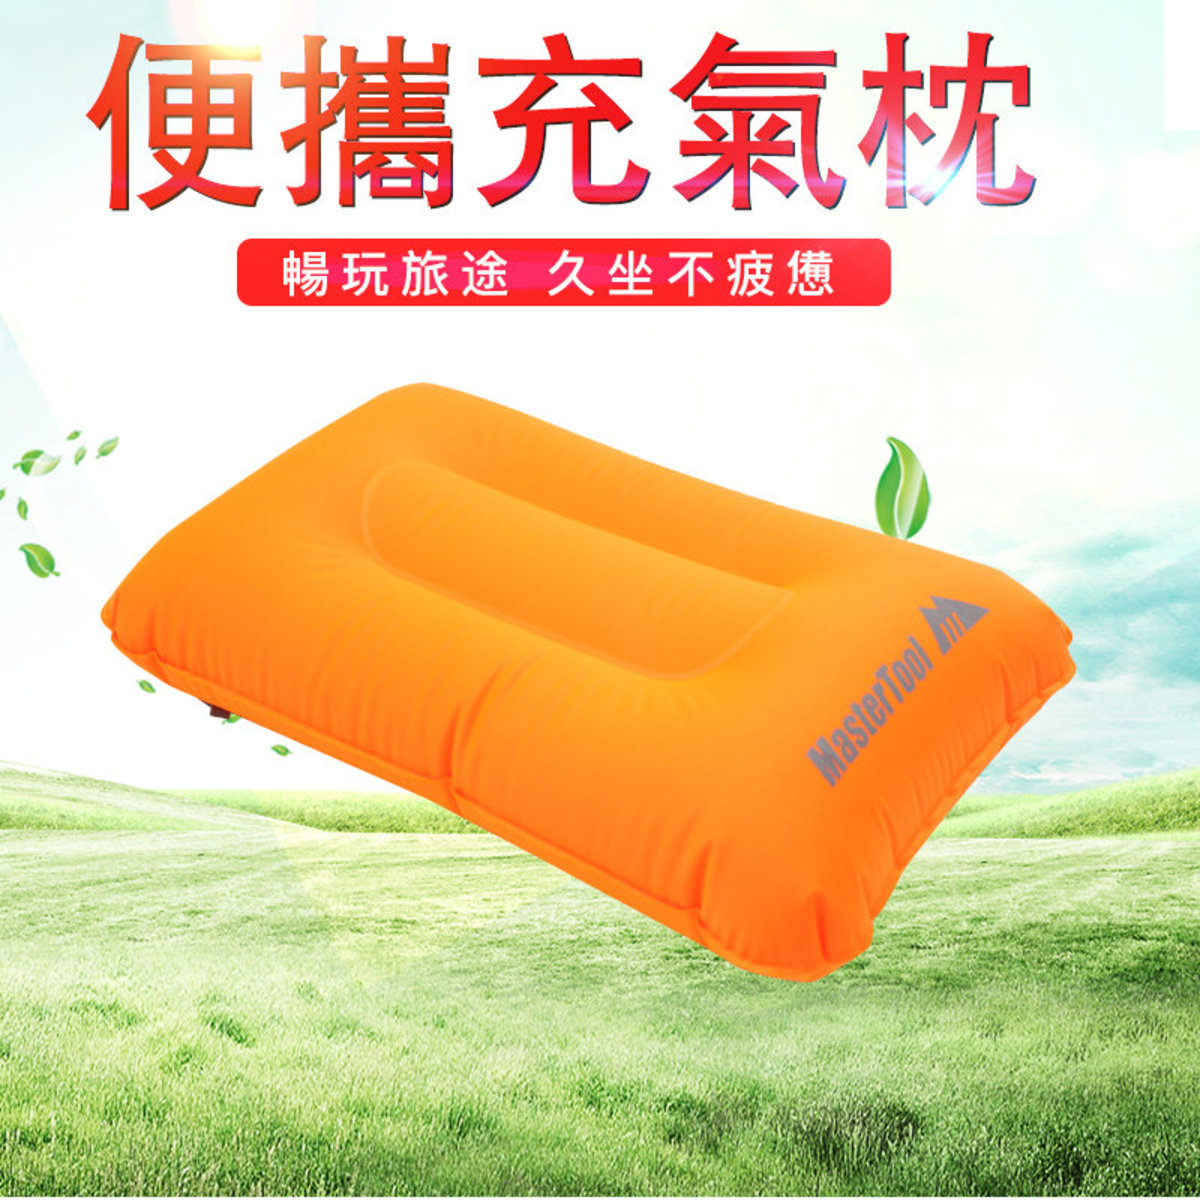 Ultralight Inflatable Camping Travel Pillow,Orange